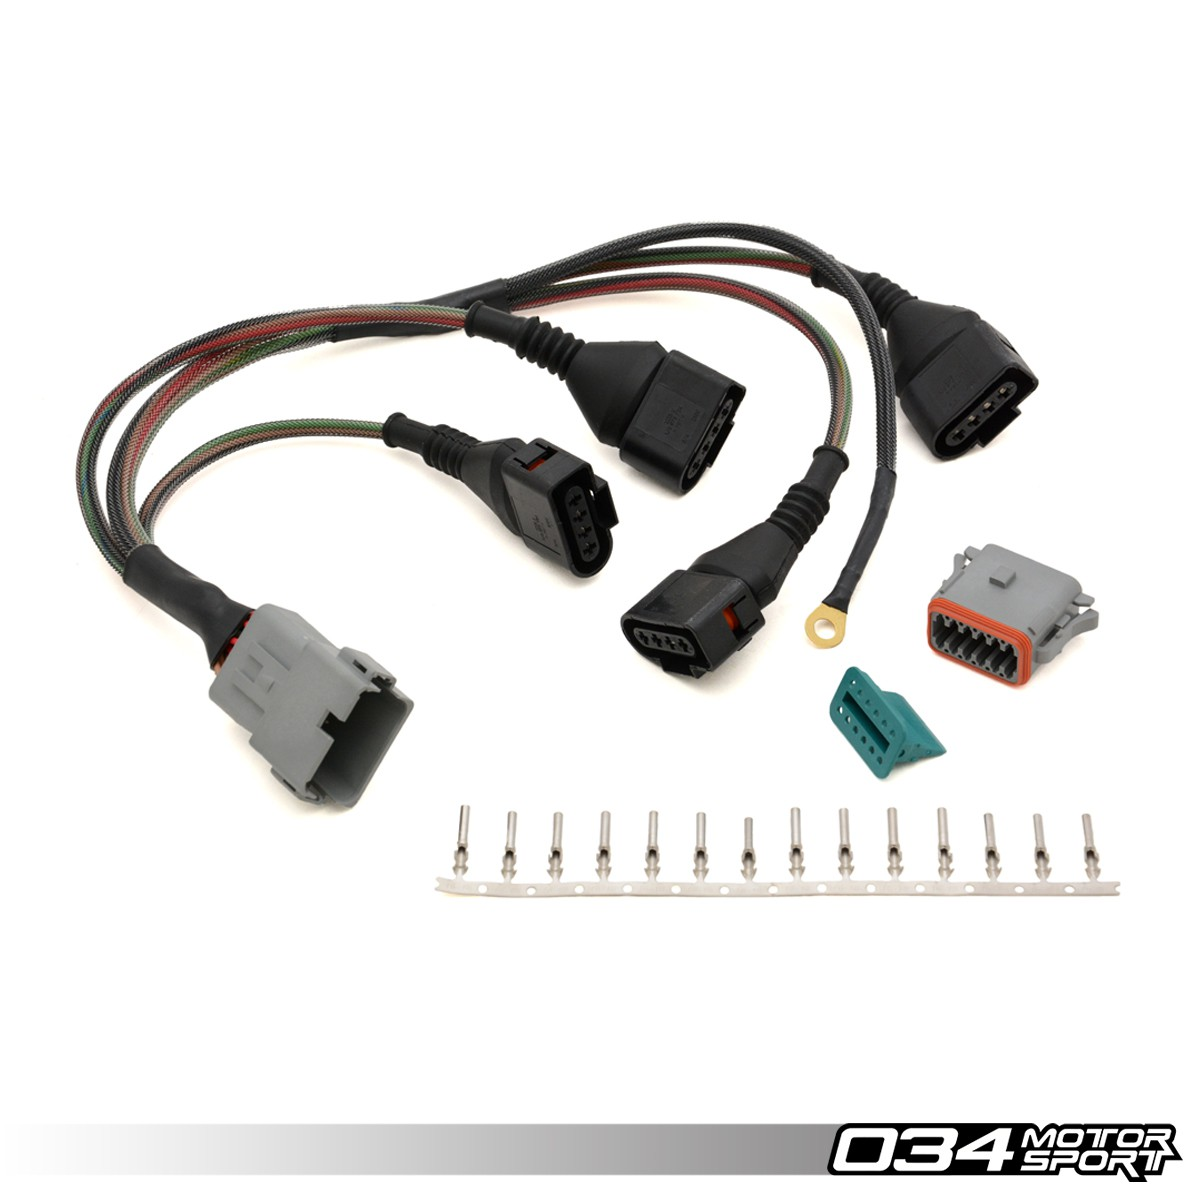 repair update harness audi volkswagen 18t with 4 wire coils 034motorsport 034 701 0004 2 repair update harness, audi volkswagen 1 8t with 4 wire coils Dune Buggy Wiring Harness Kit at mifinder.co